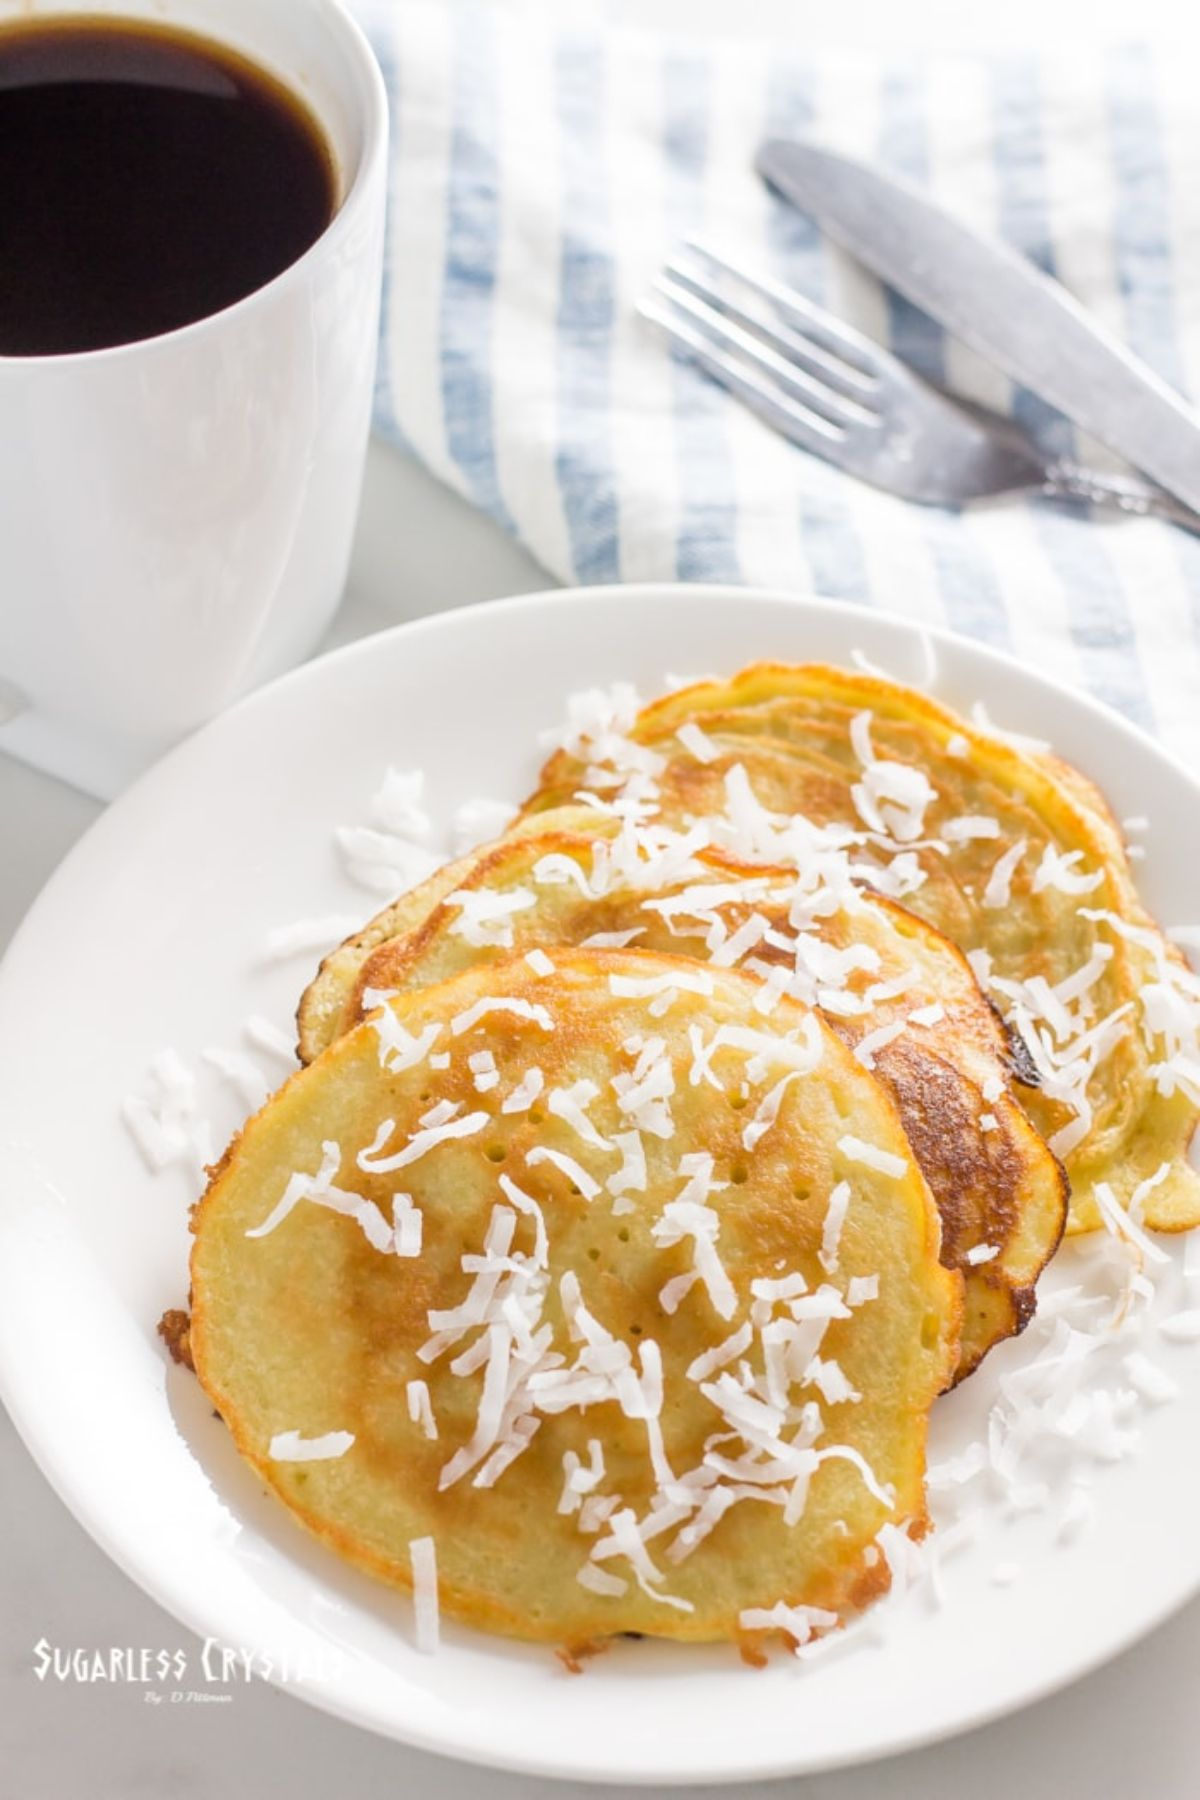 A white palte with pancakes on it, sprinkled with shreded coconut. A cup of coffee and a knife and fork are behind it